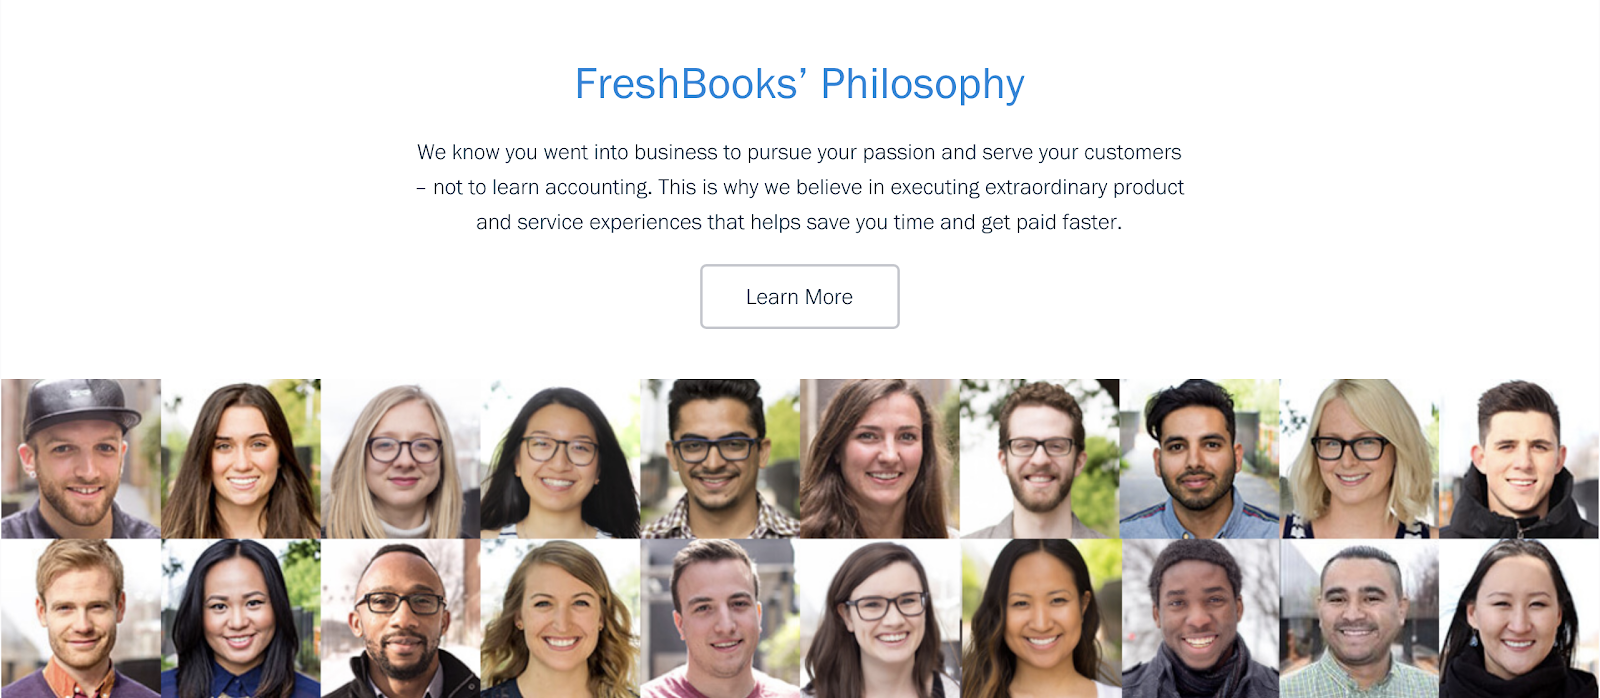 freshbooks-unique-value-proposition02